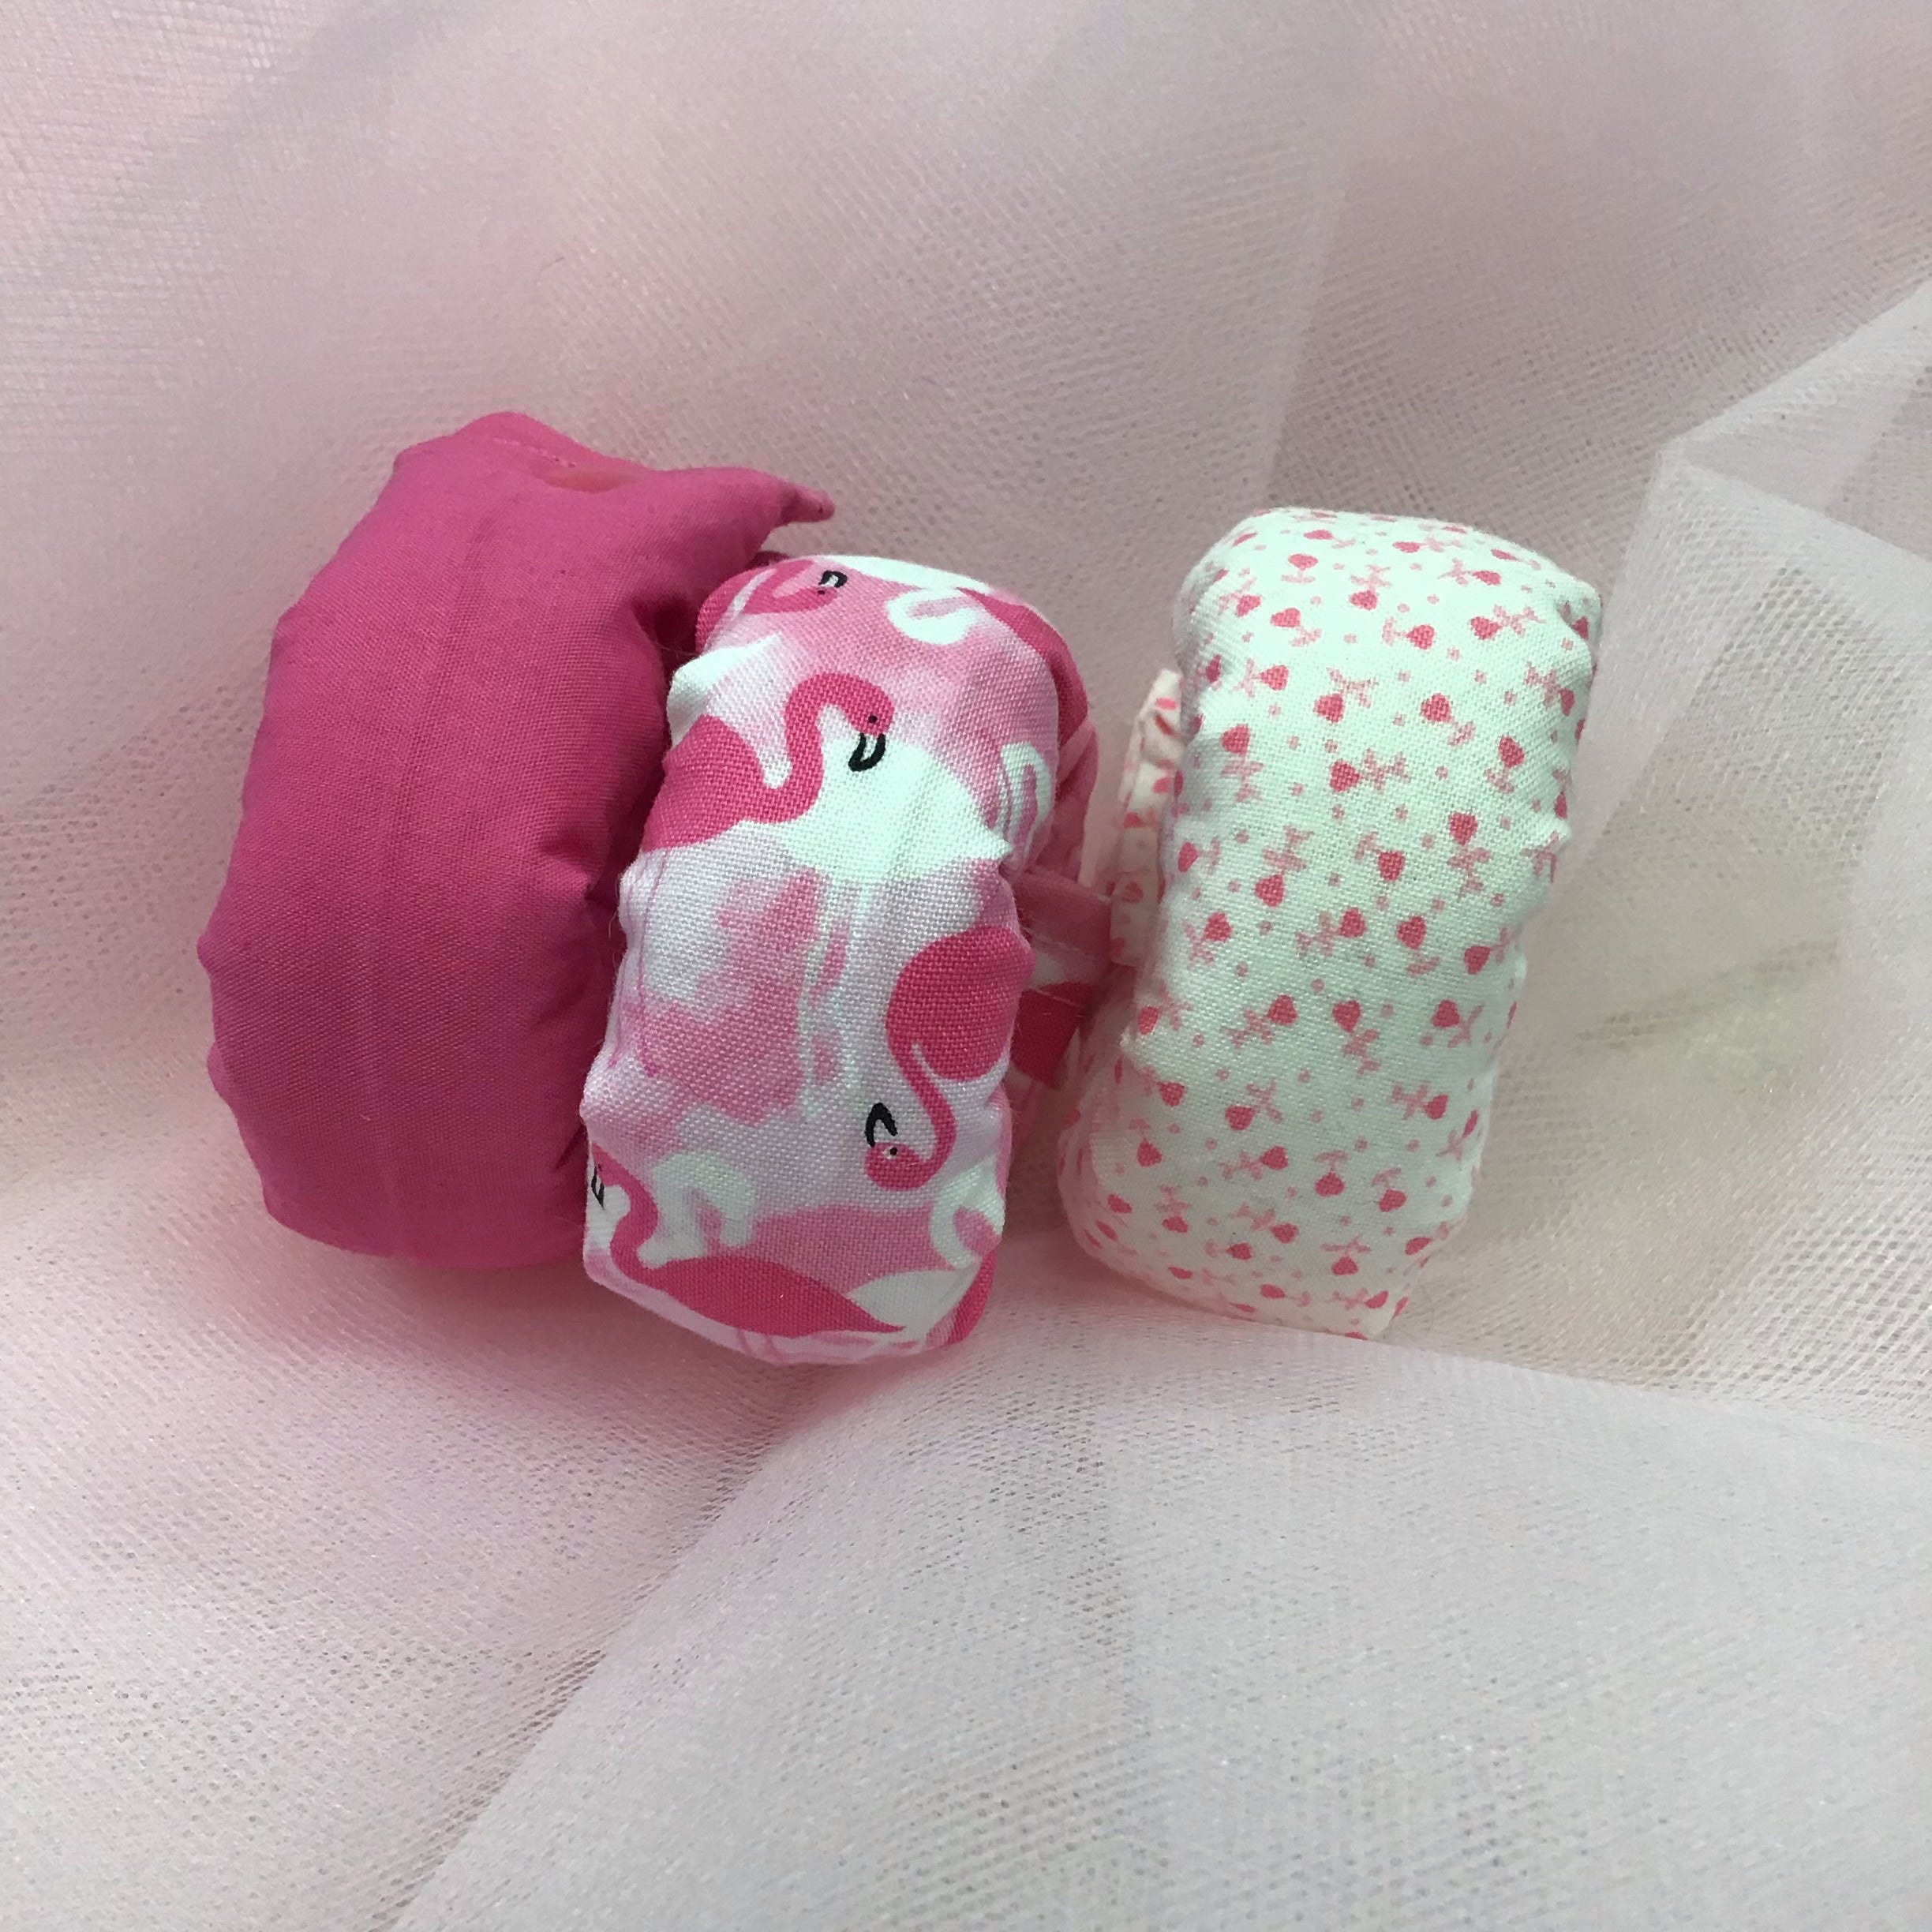 Pink Flamingo Trio 3 Piece set Fabric Hair Roller / Hair Curler - My Easy Curls